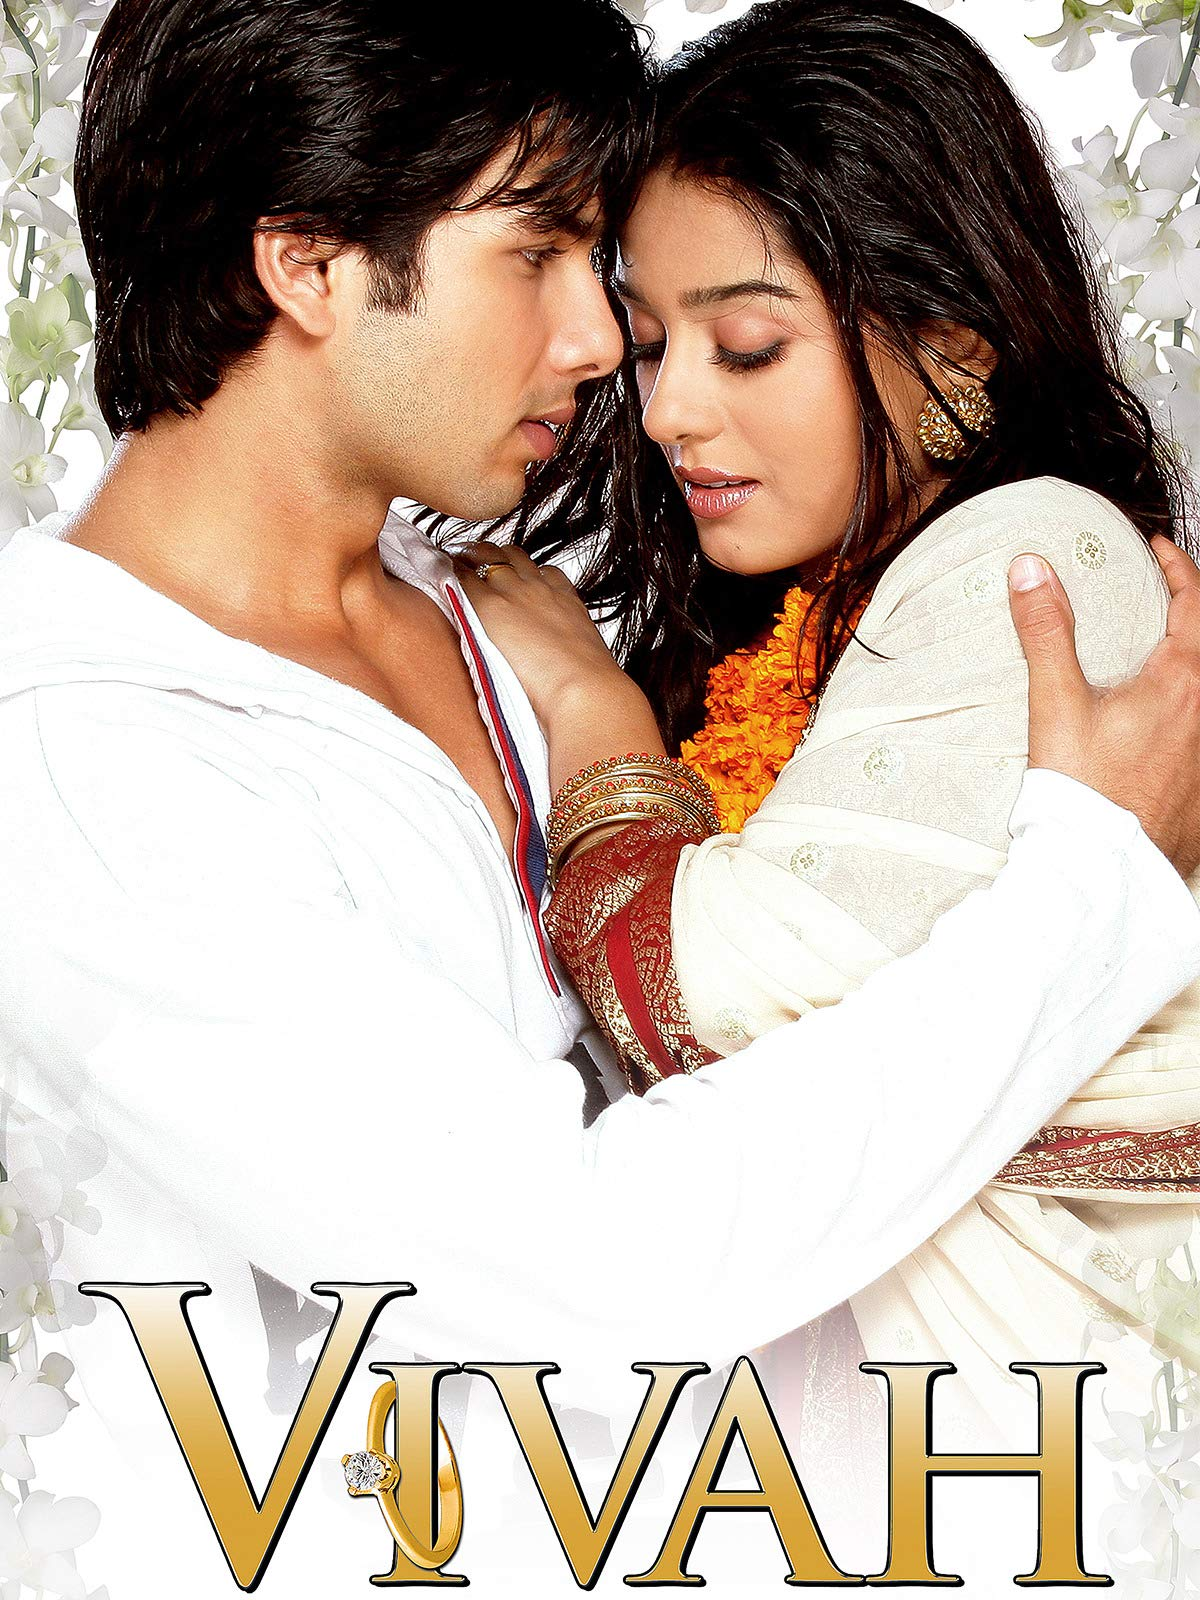 Vivah  2006  BD50  Untouched BluRay  DRs | 42 GB |